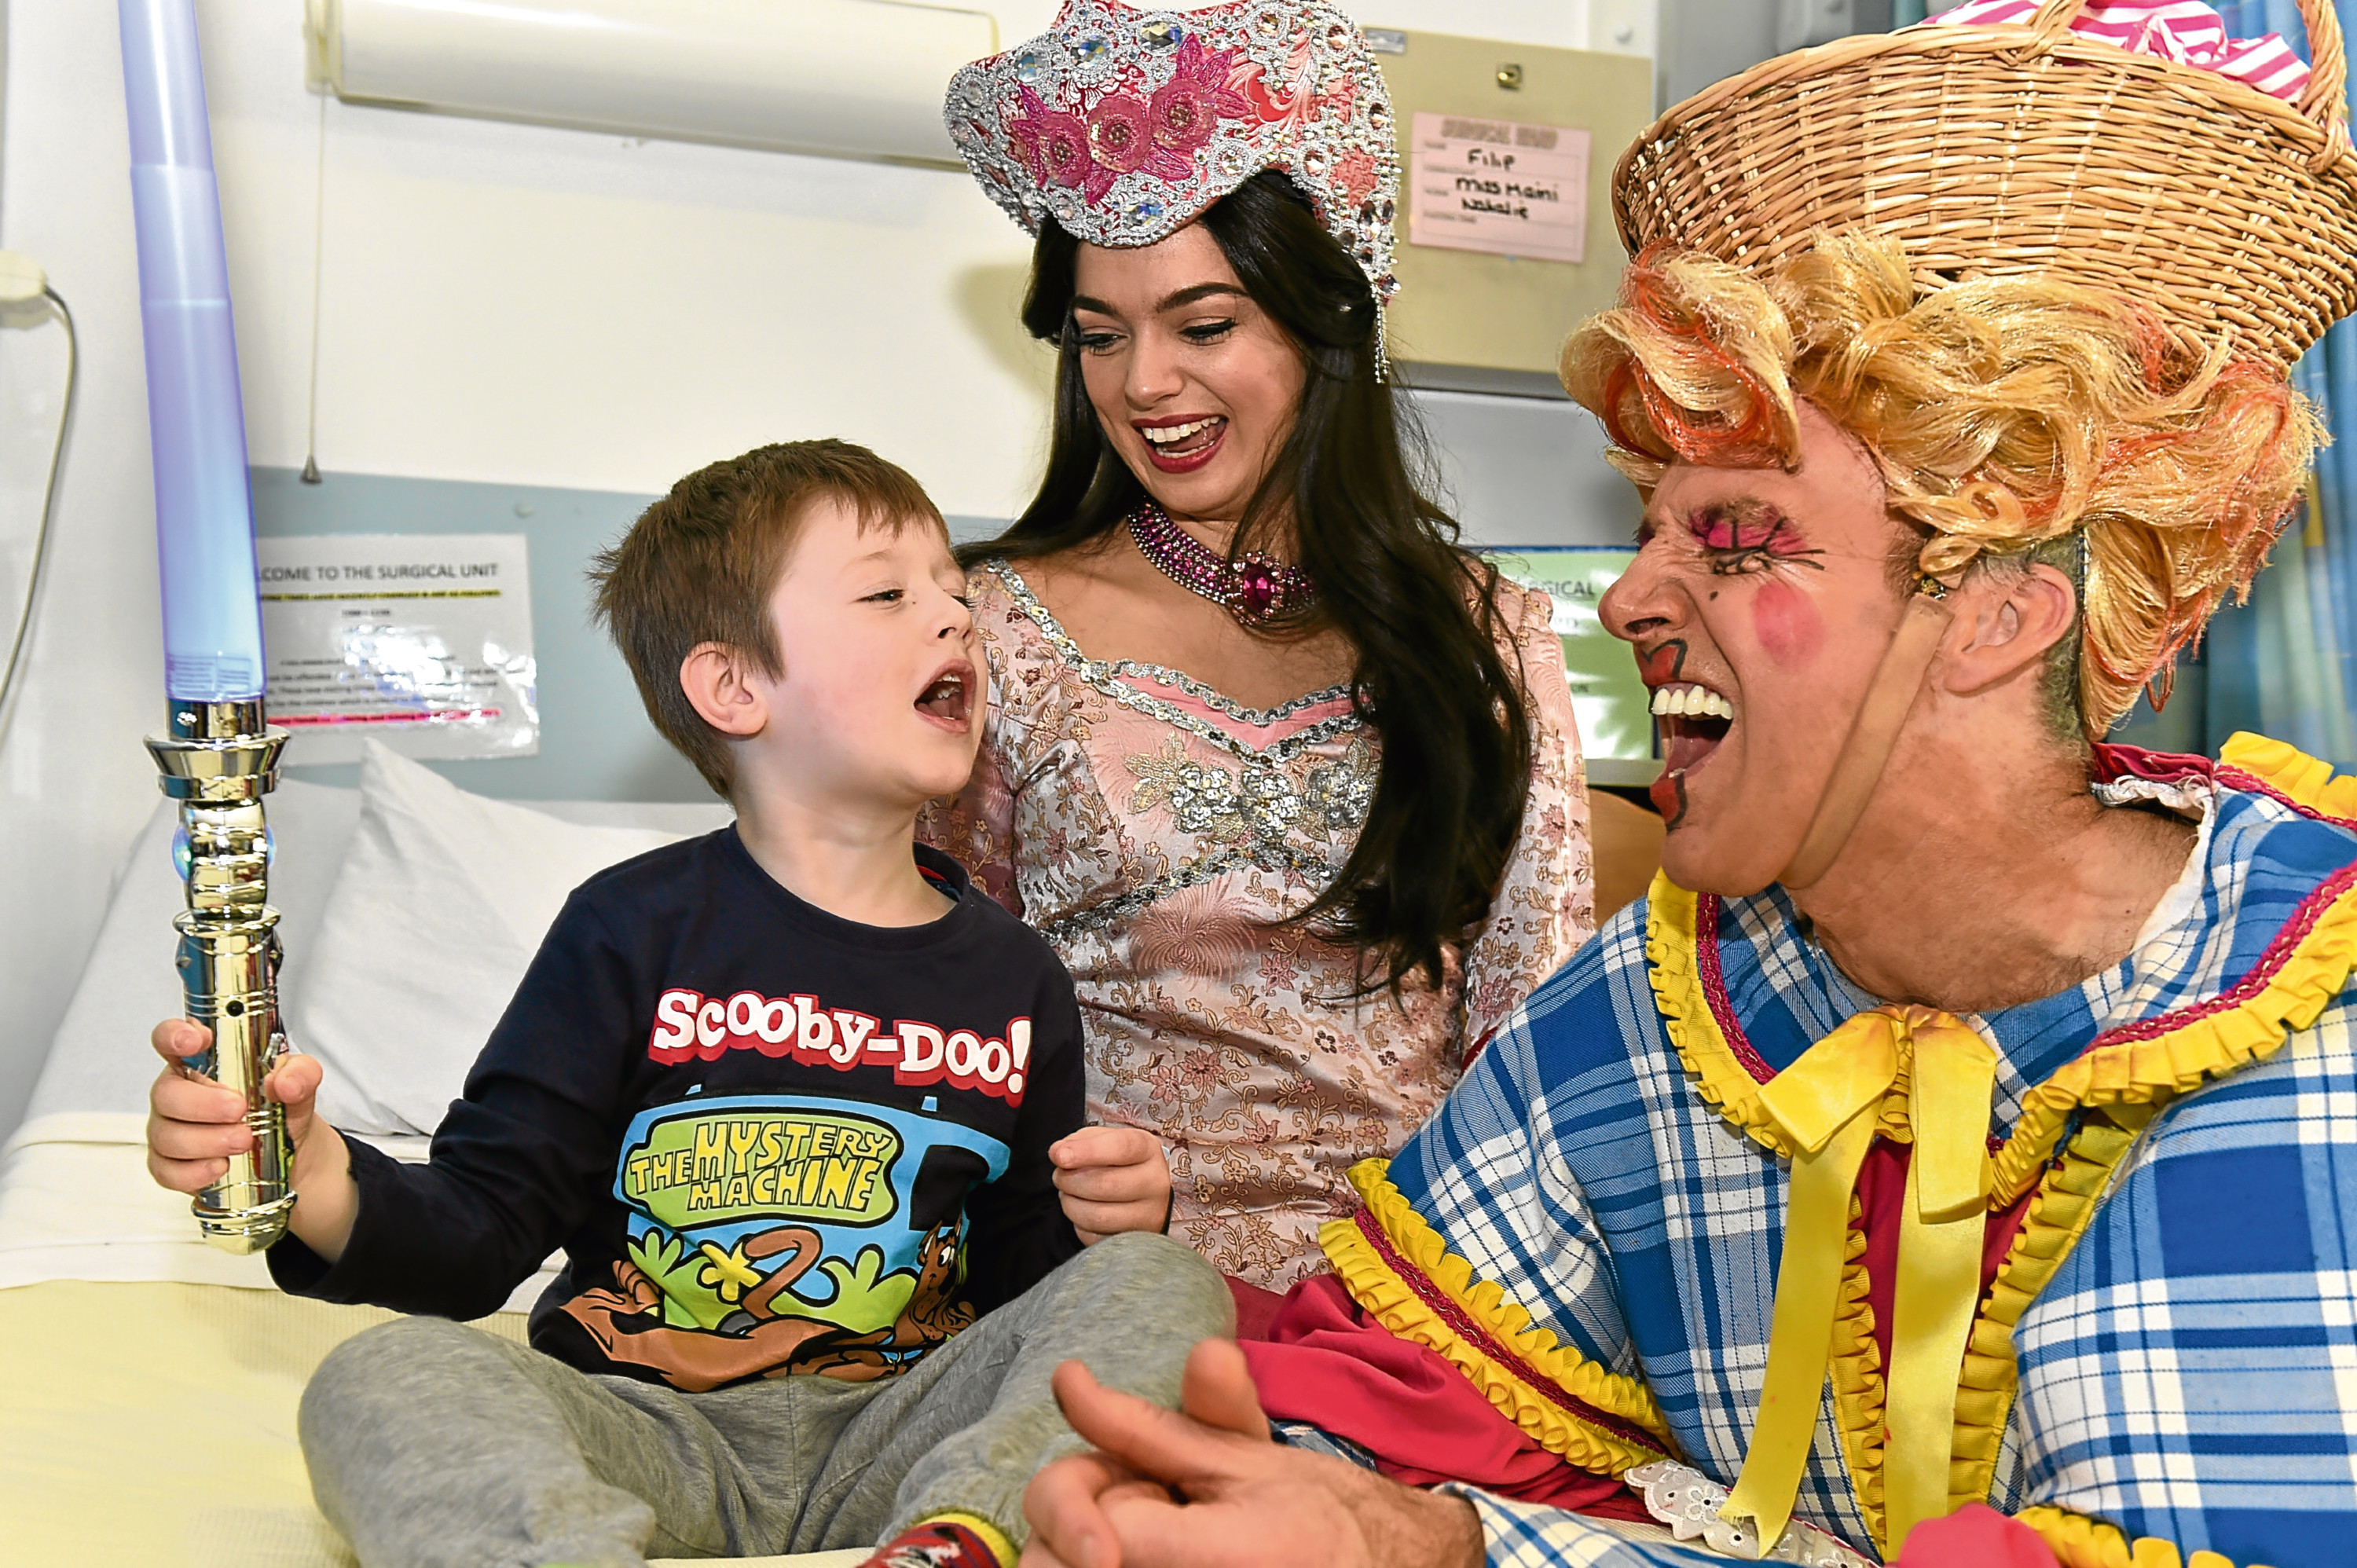 Some of the cast of HMT's panto Aladdin visited Aberdeen Children's Hospital to bring some cheer to the patients.  Filip , 5 with  (from left) Lisa-Anne Wood (Princess Jasmine) and Alan McHugh (Widow Twankey).